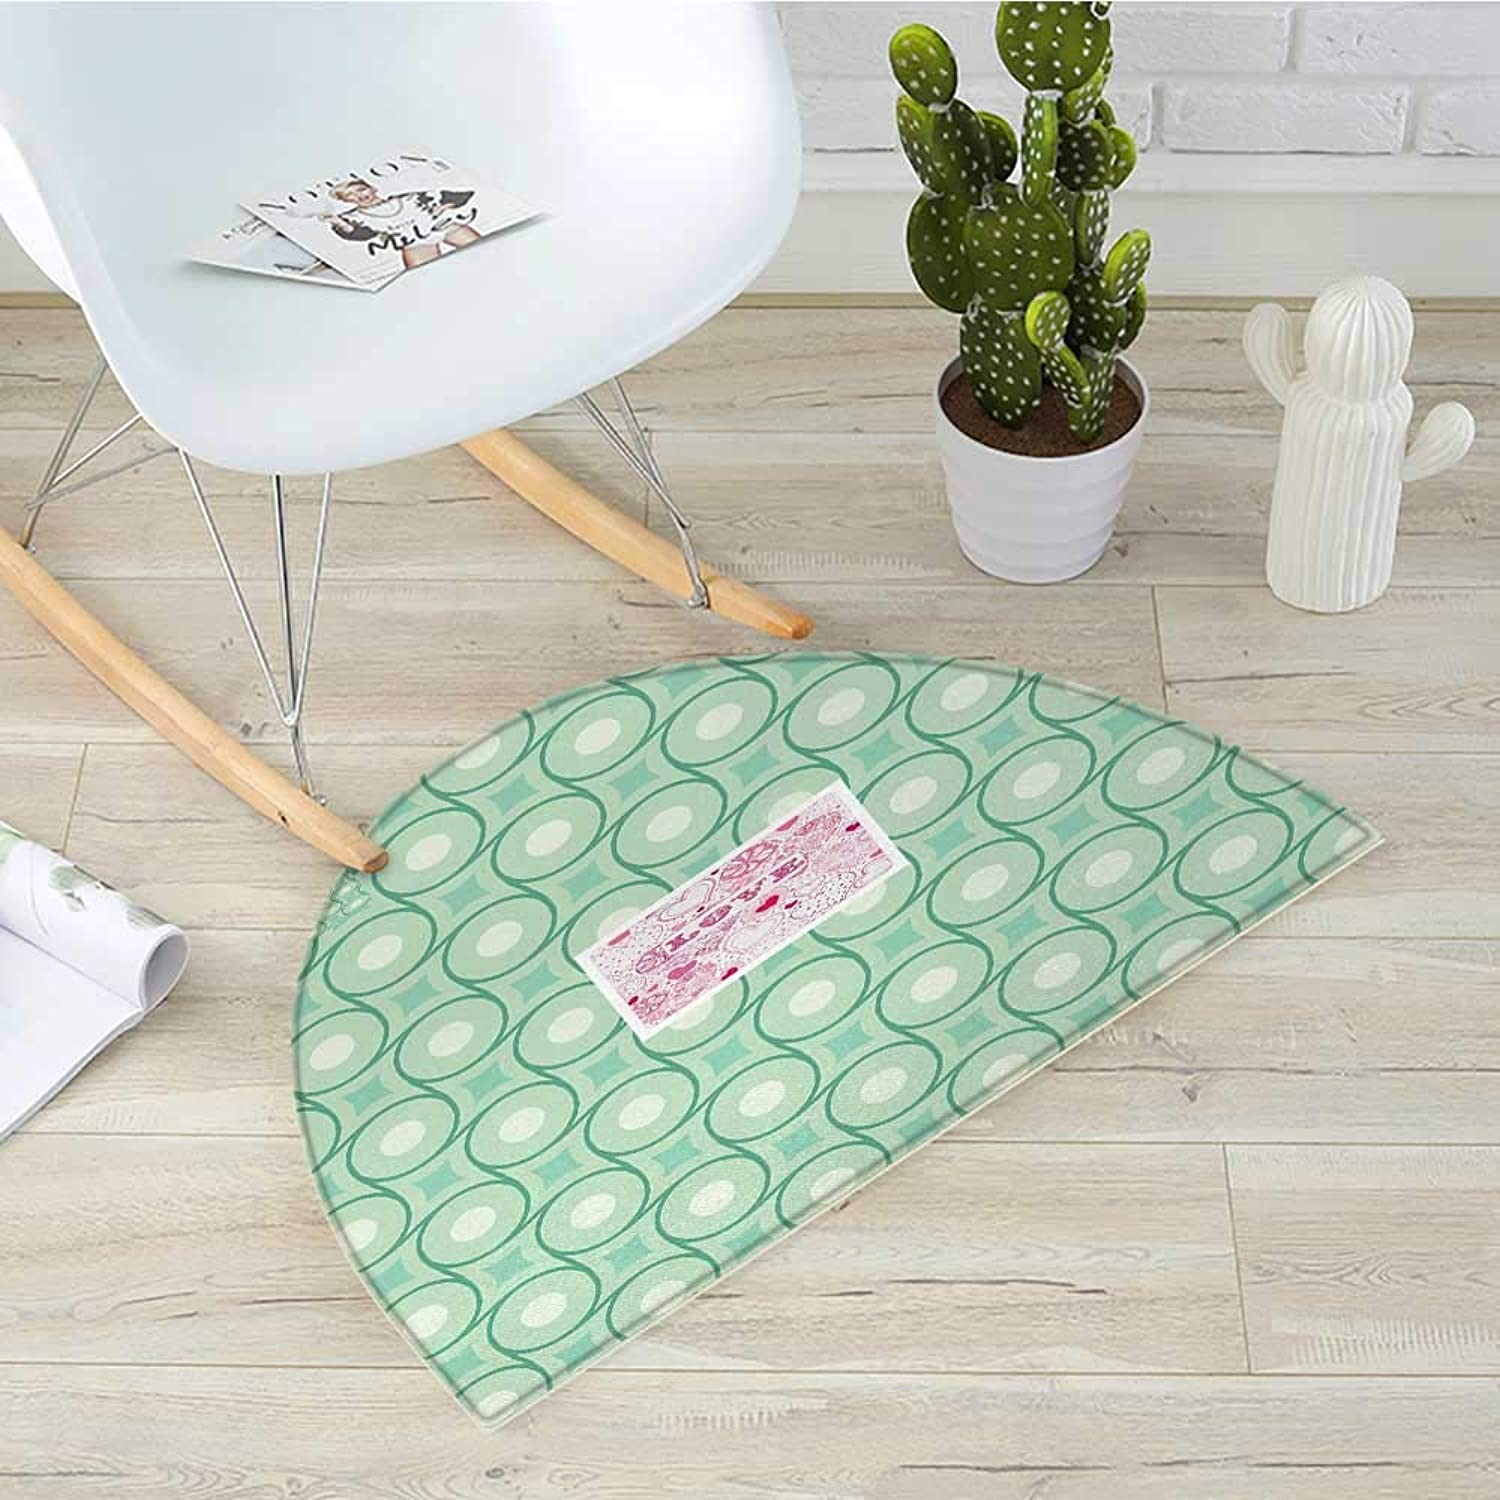 Mint Semicircle Doormat Circles and Dots Linked with Lines Wavy Squares Geometric Retro Style Halfmoon doormats H 31.5  xD 47.2  Mint Emerald Almond Green